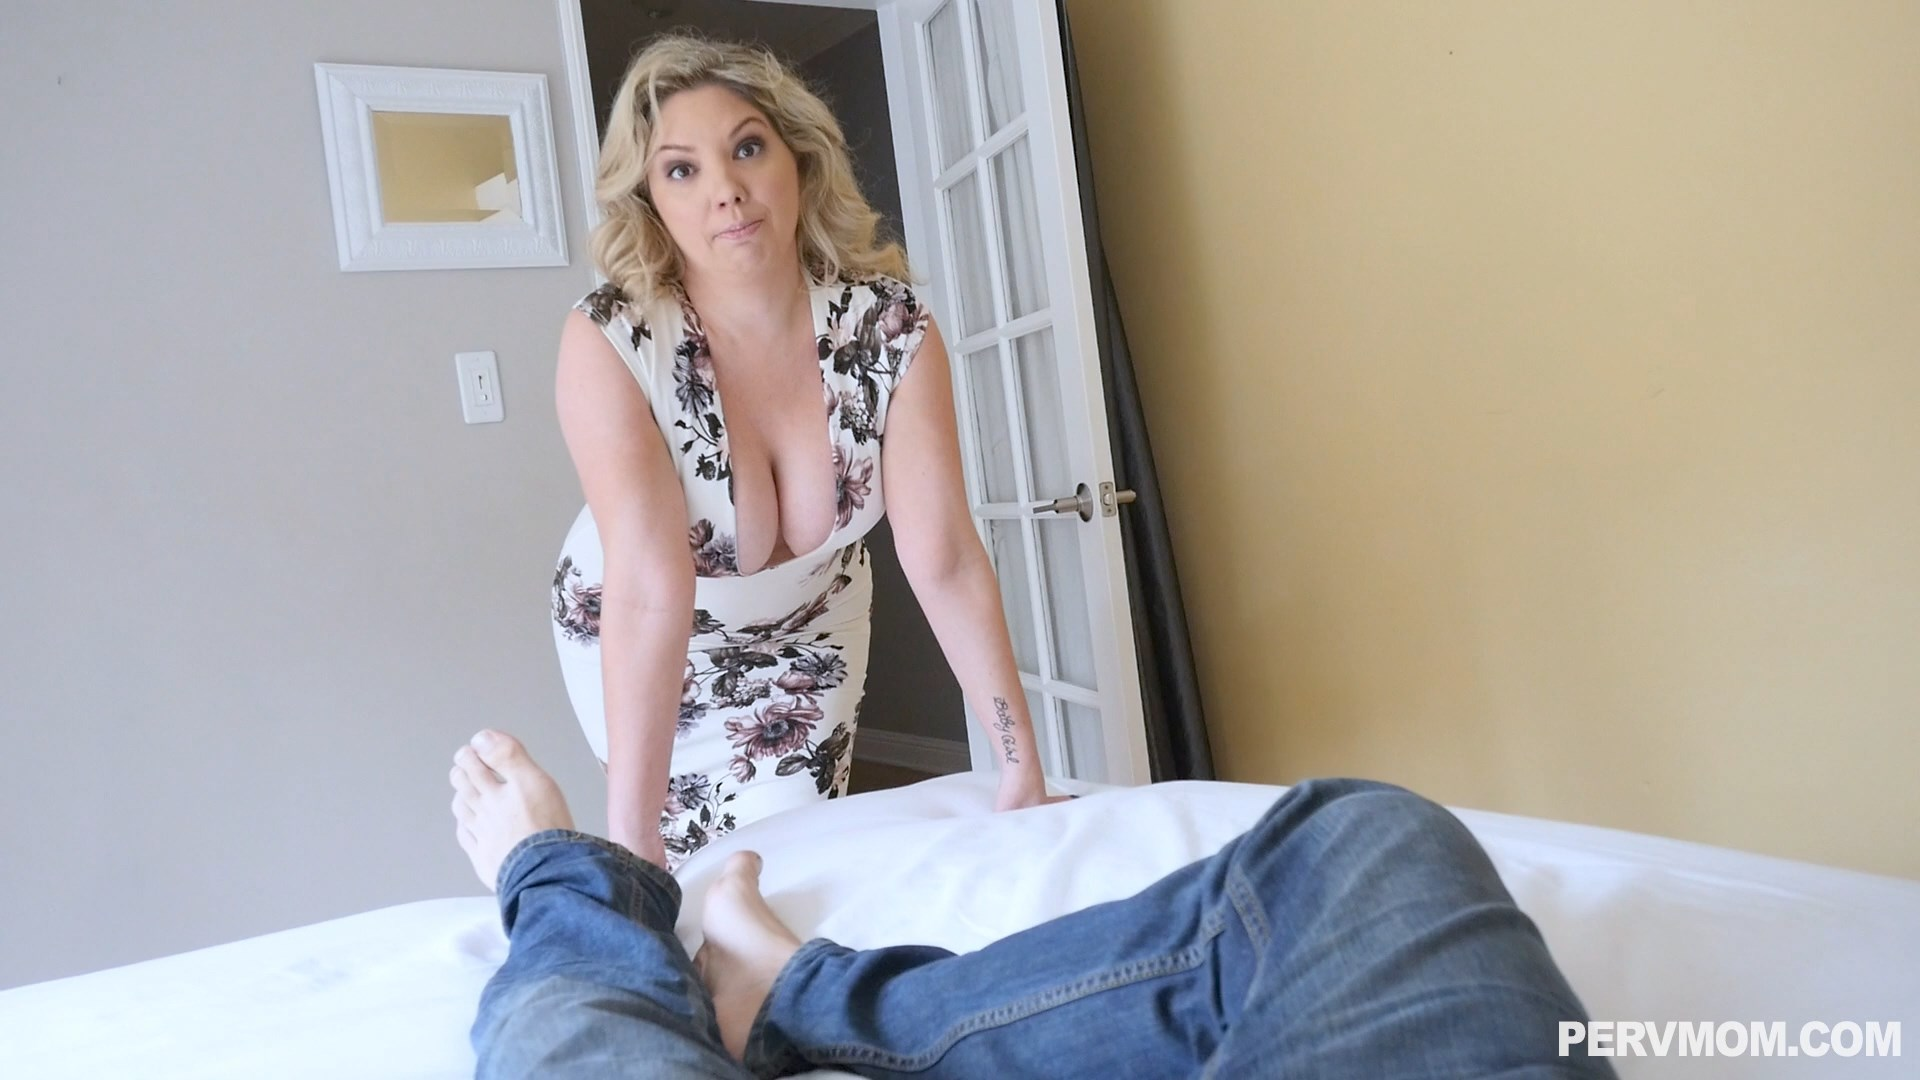 Perv Mom - Knock Before You Enter - Kiki Daire